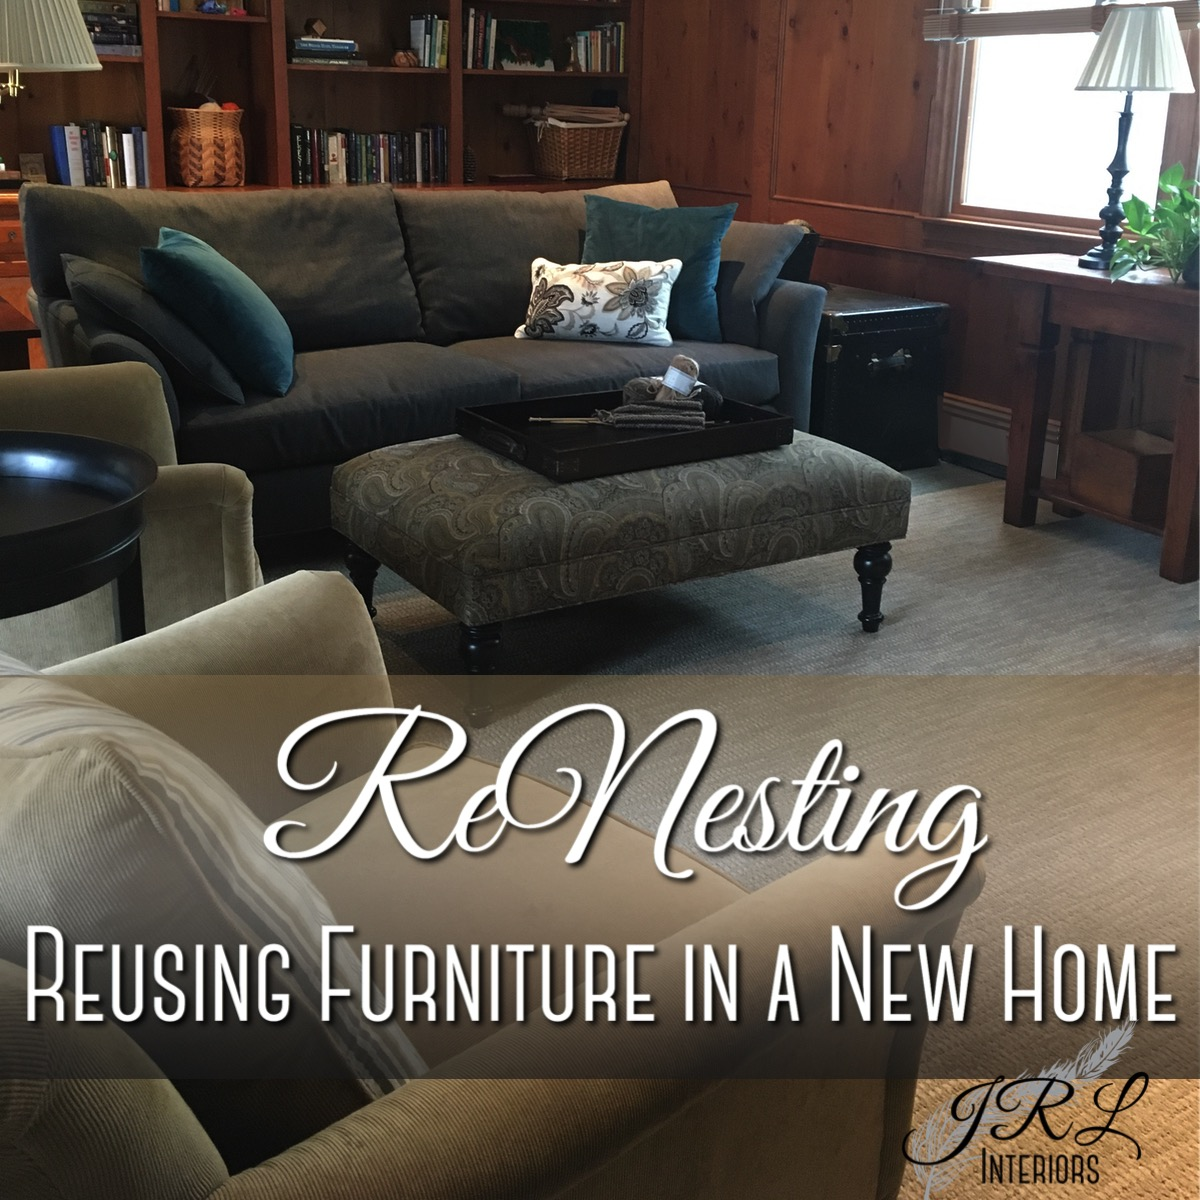 Reusing furniture in a new home